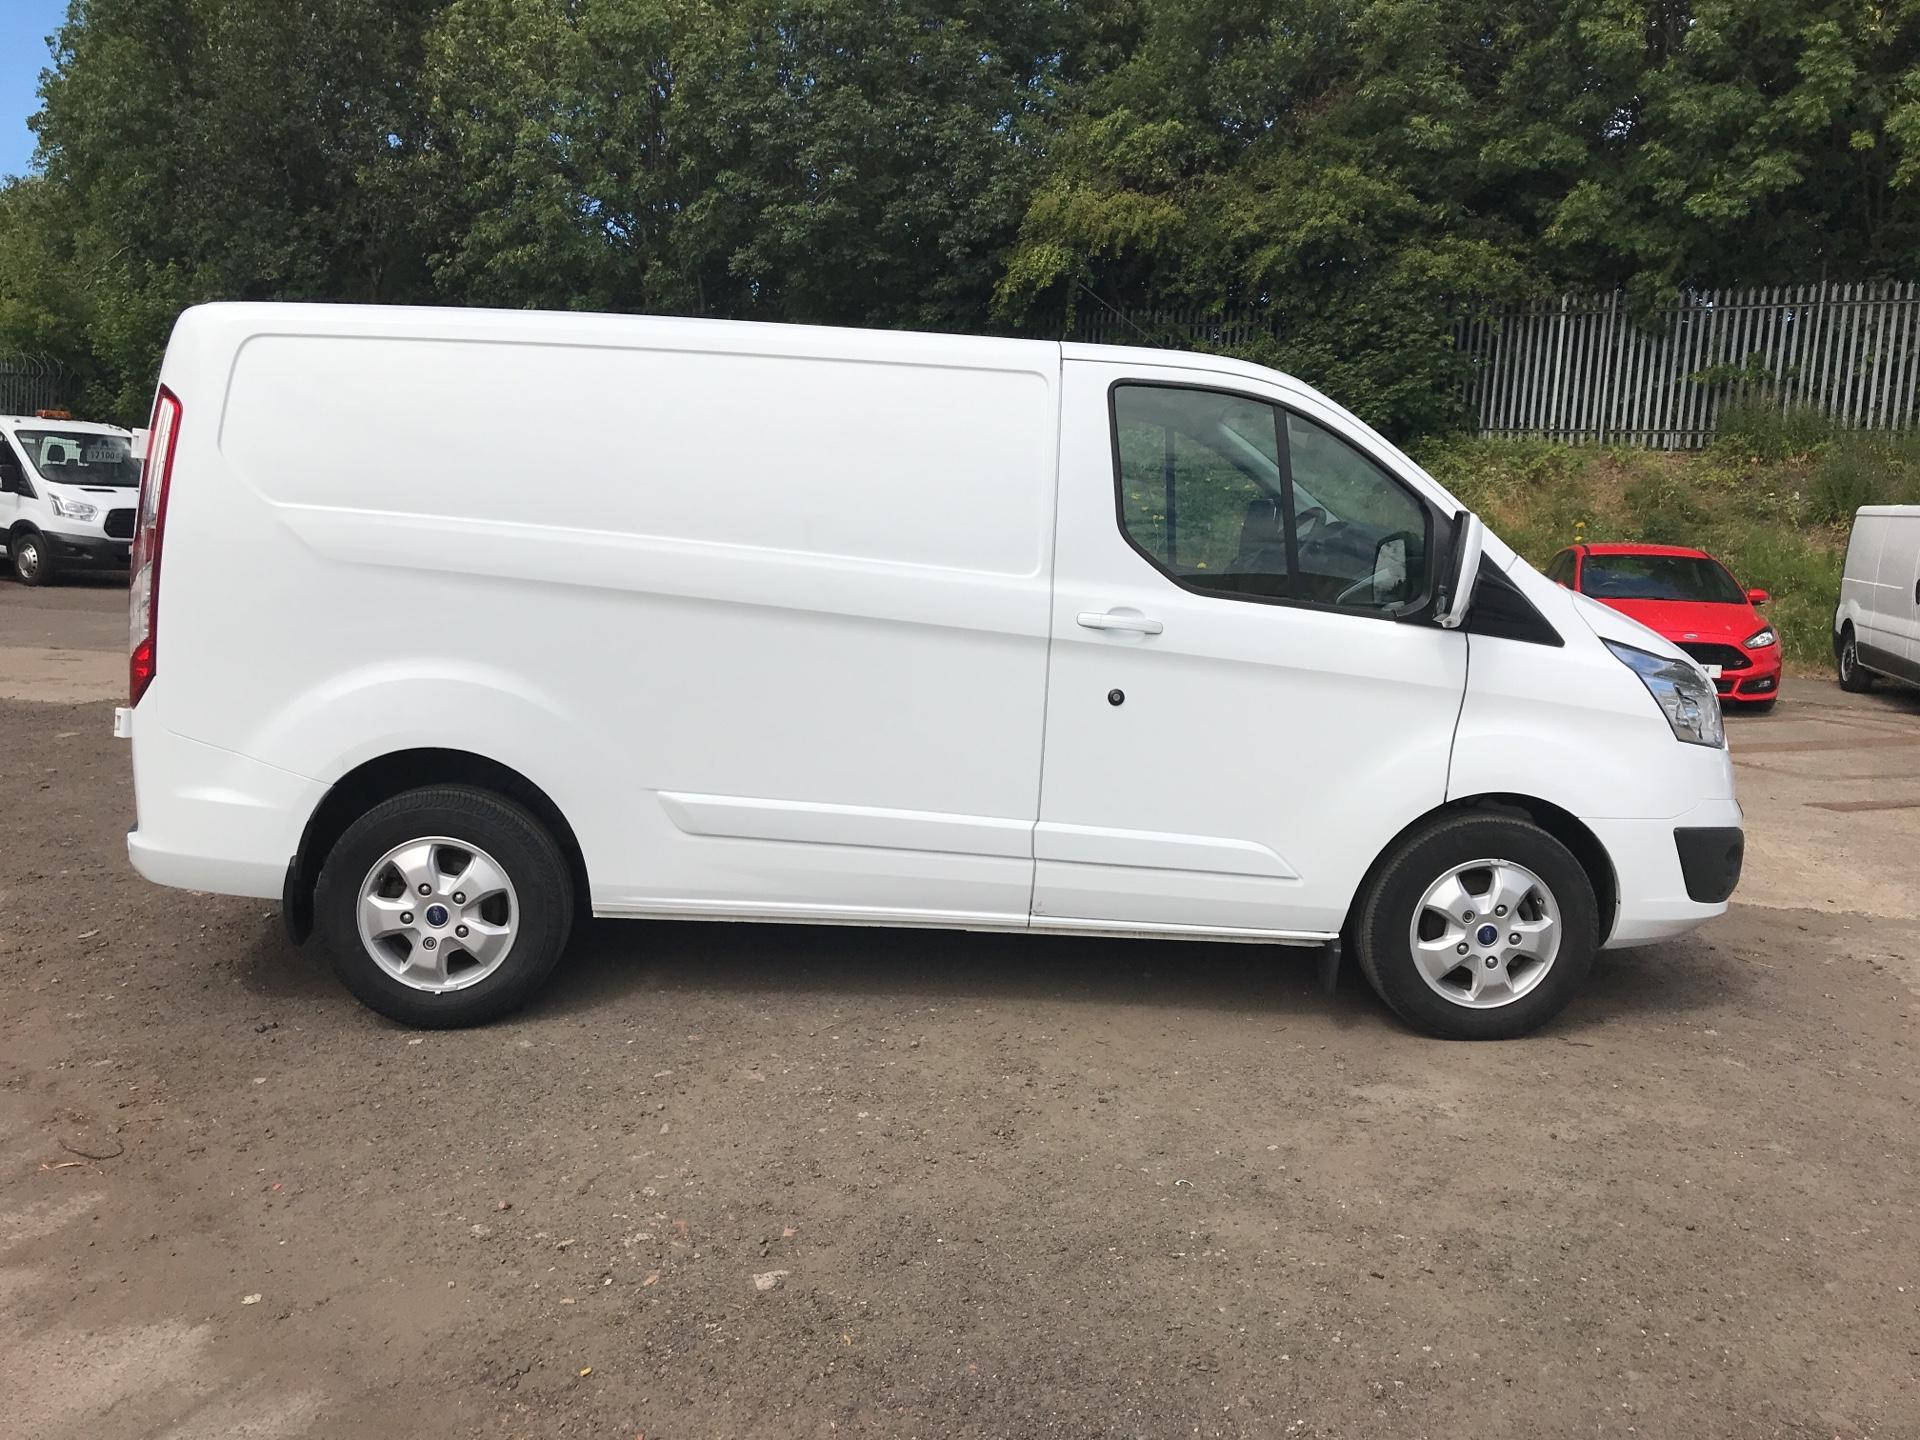 2017 Ford Transit Custom 270 L1 DIESEL FWD 2.0 TDCI 130PS LOW ROOF LIMITED EURO 6 (EO17GVM) Image 2